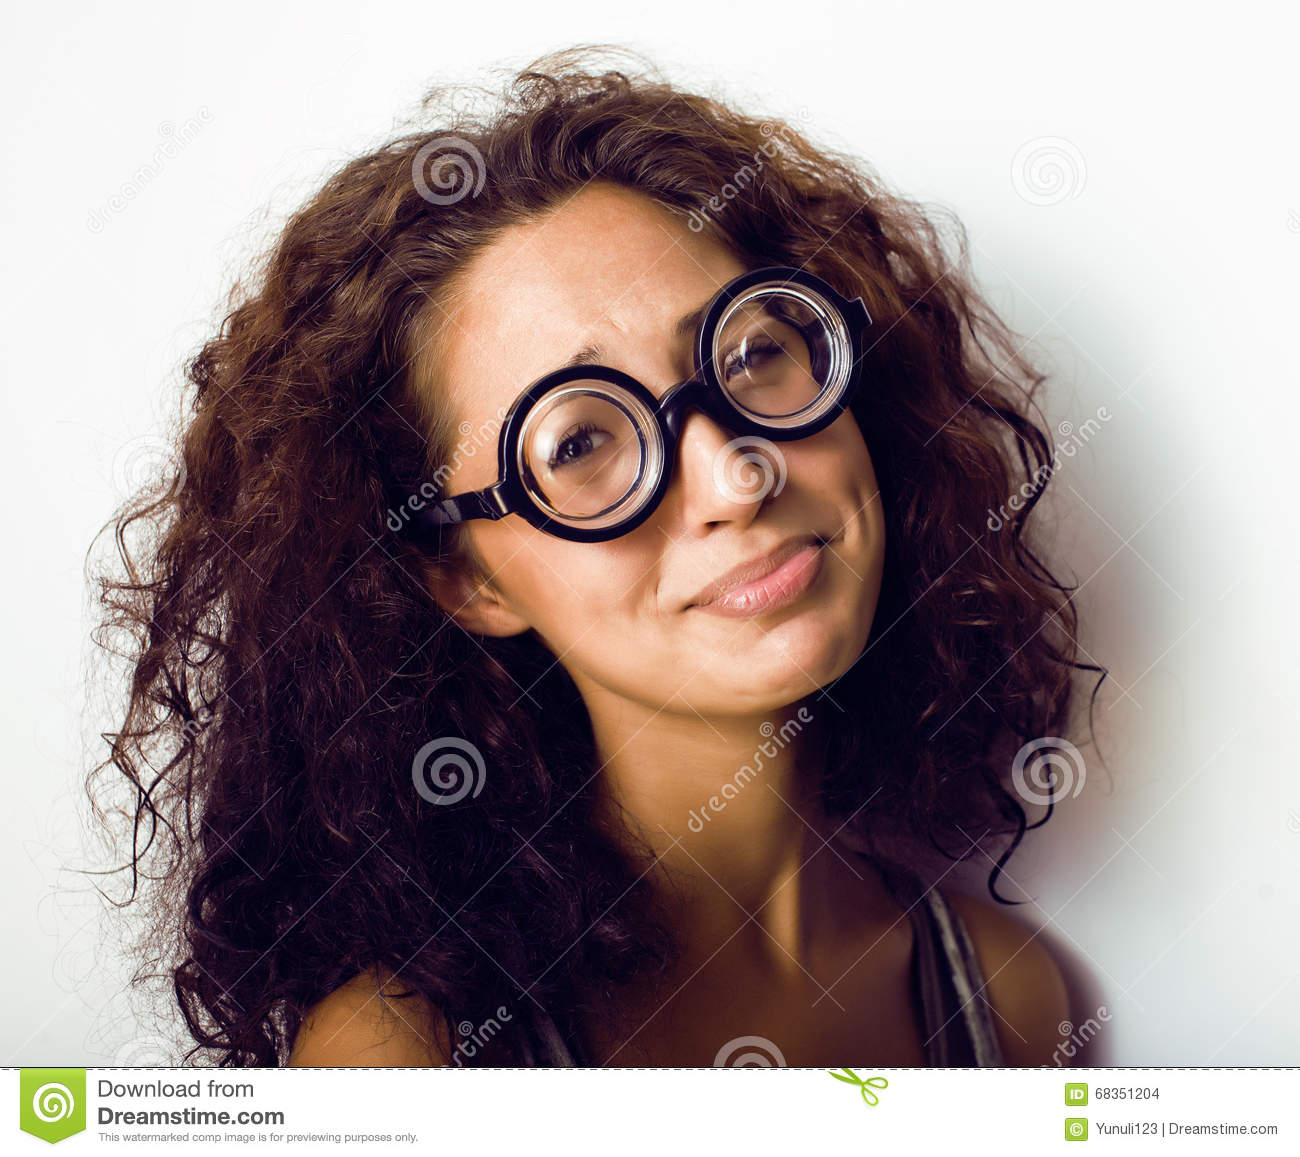 Bookworm Cute Young Woman In Glasses Curly Hair Teenage Stock